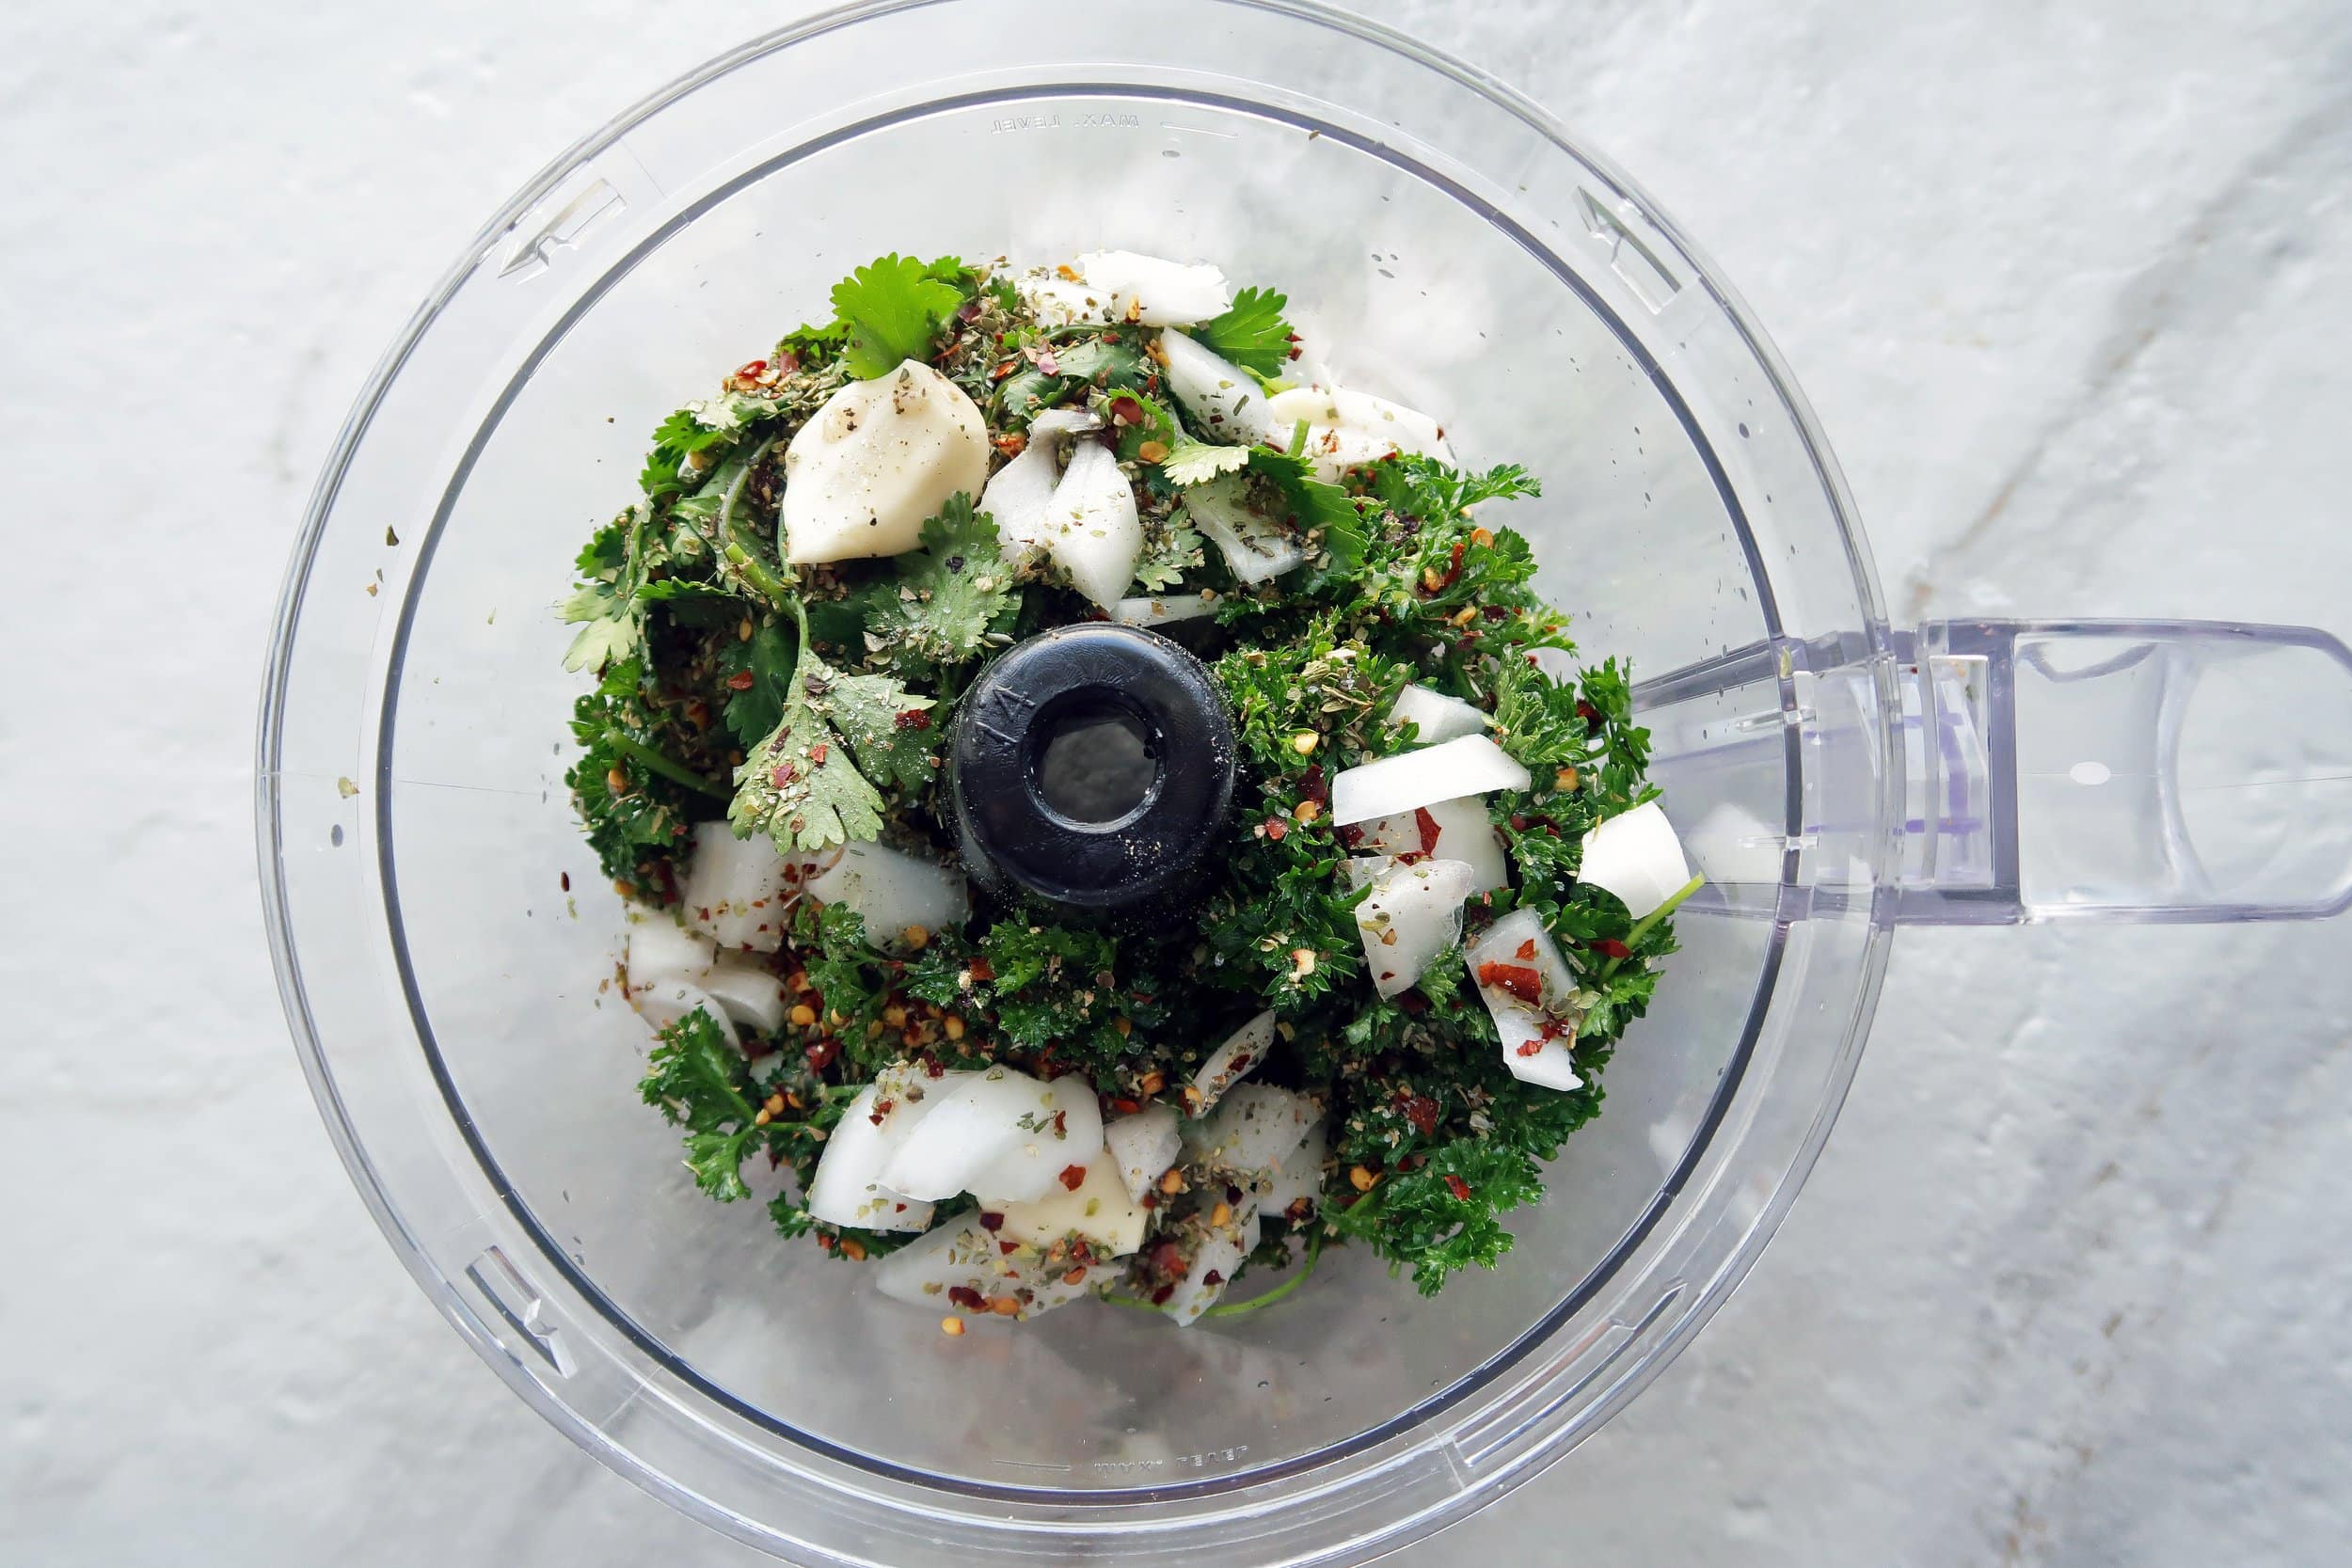 A food processor containing chimichurri sauce ingredients including parsley, garlic, and onion.